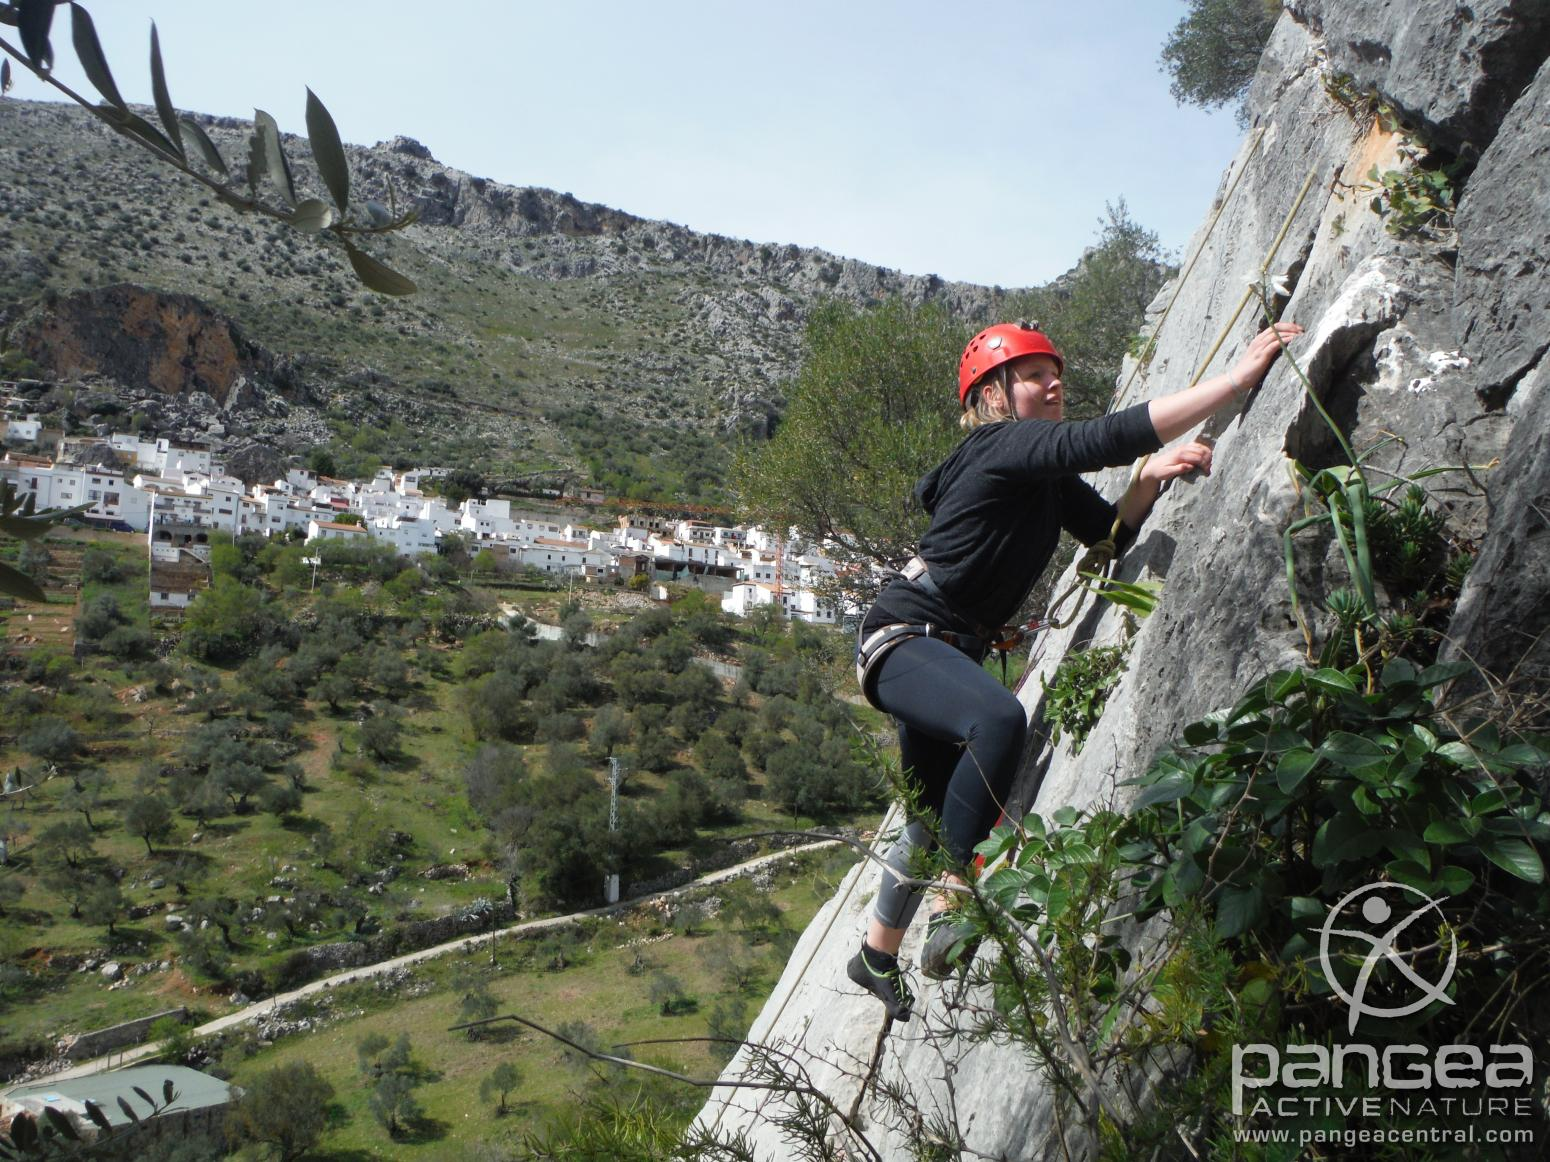 Escalada. Benaoján. Pangea Active Nature